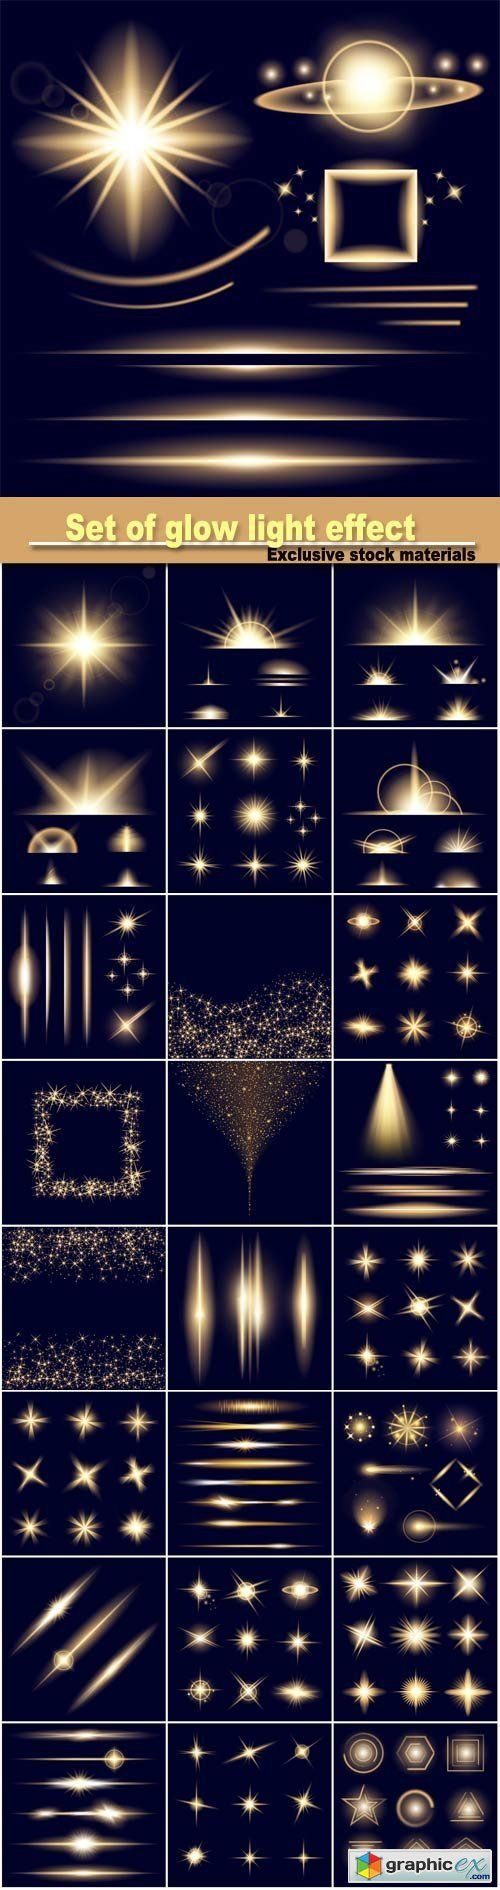 set of glow light effect stars bursts with sparkles isolated on black background